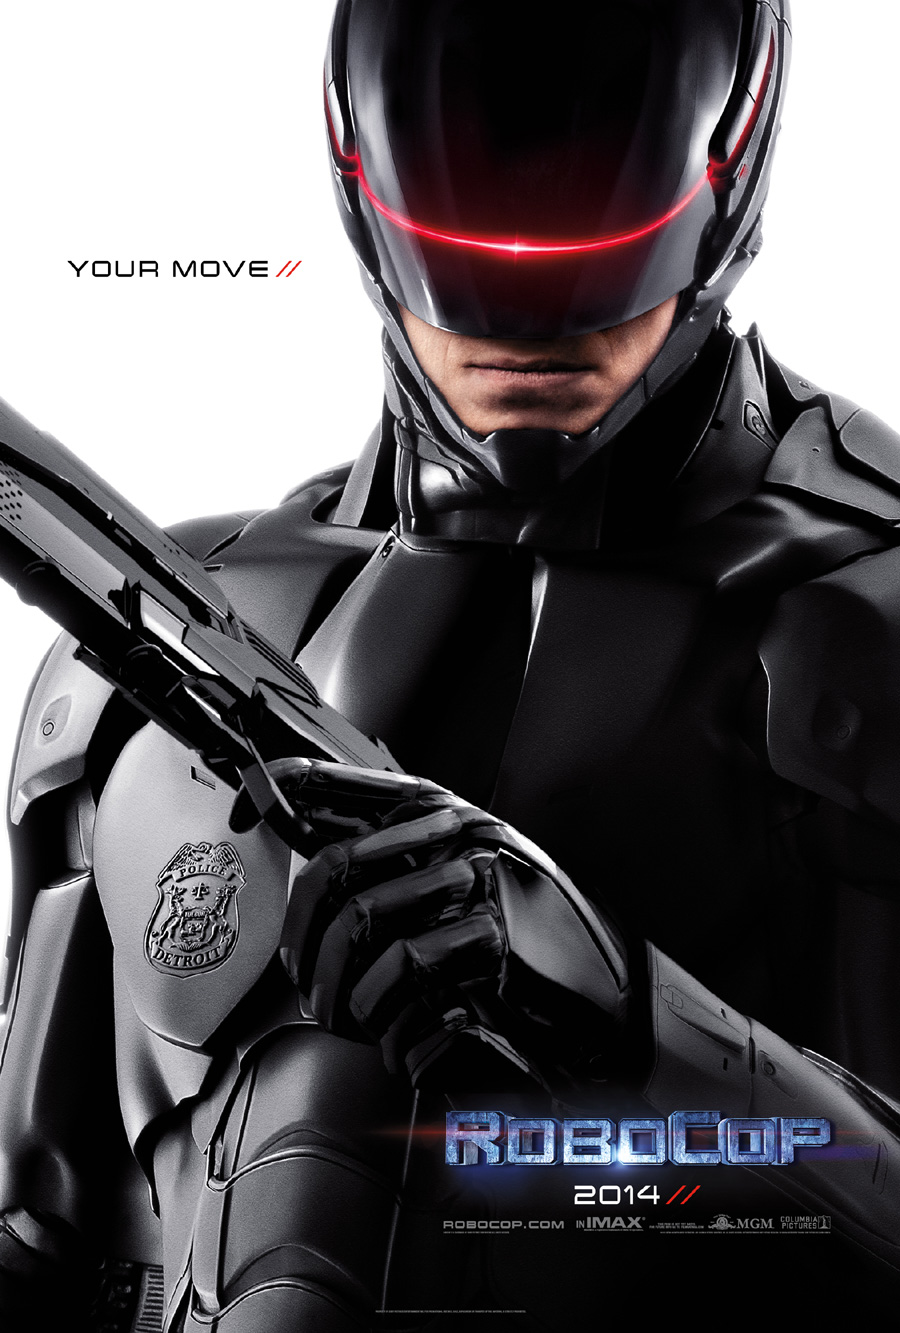 It's Your Move On The First RoboCop Poster